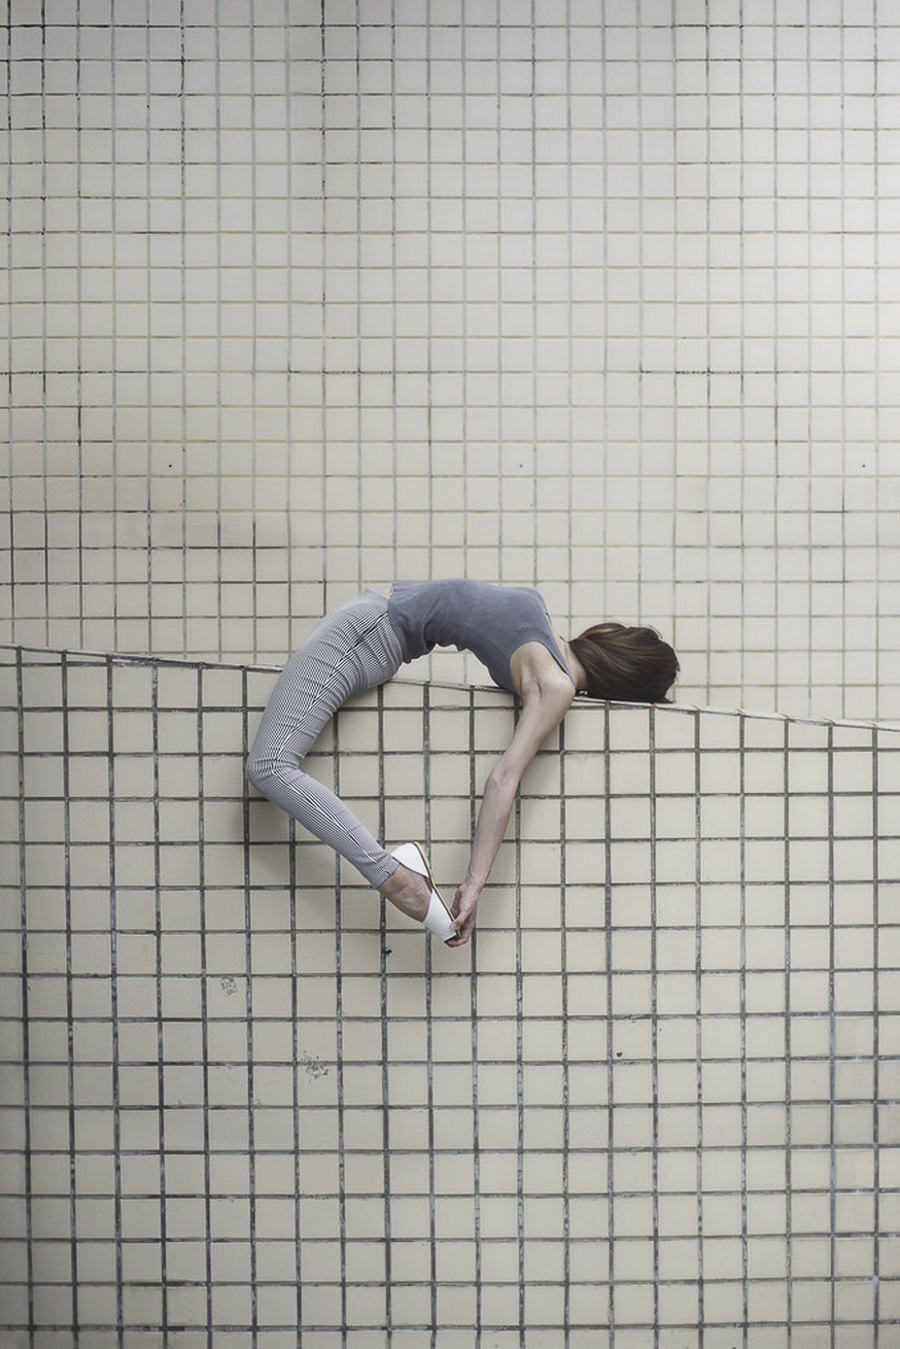 2334 by Yung Cheng Lin